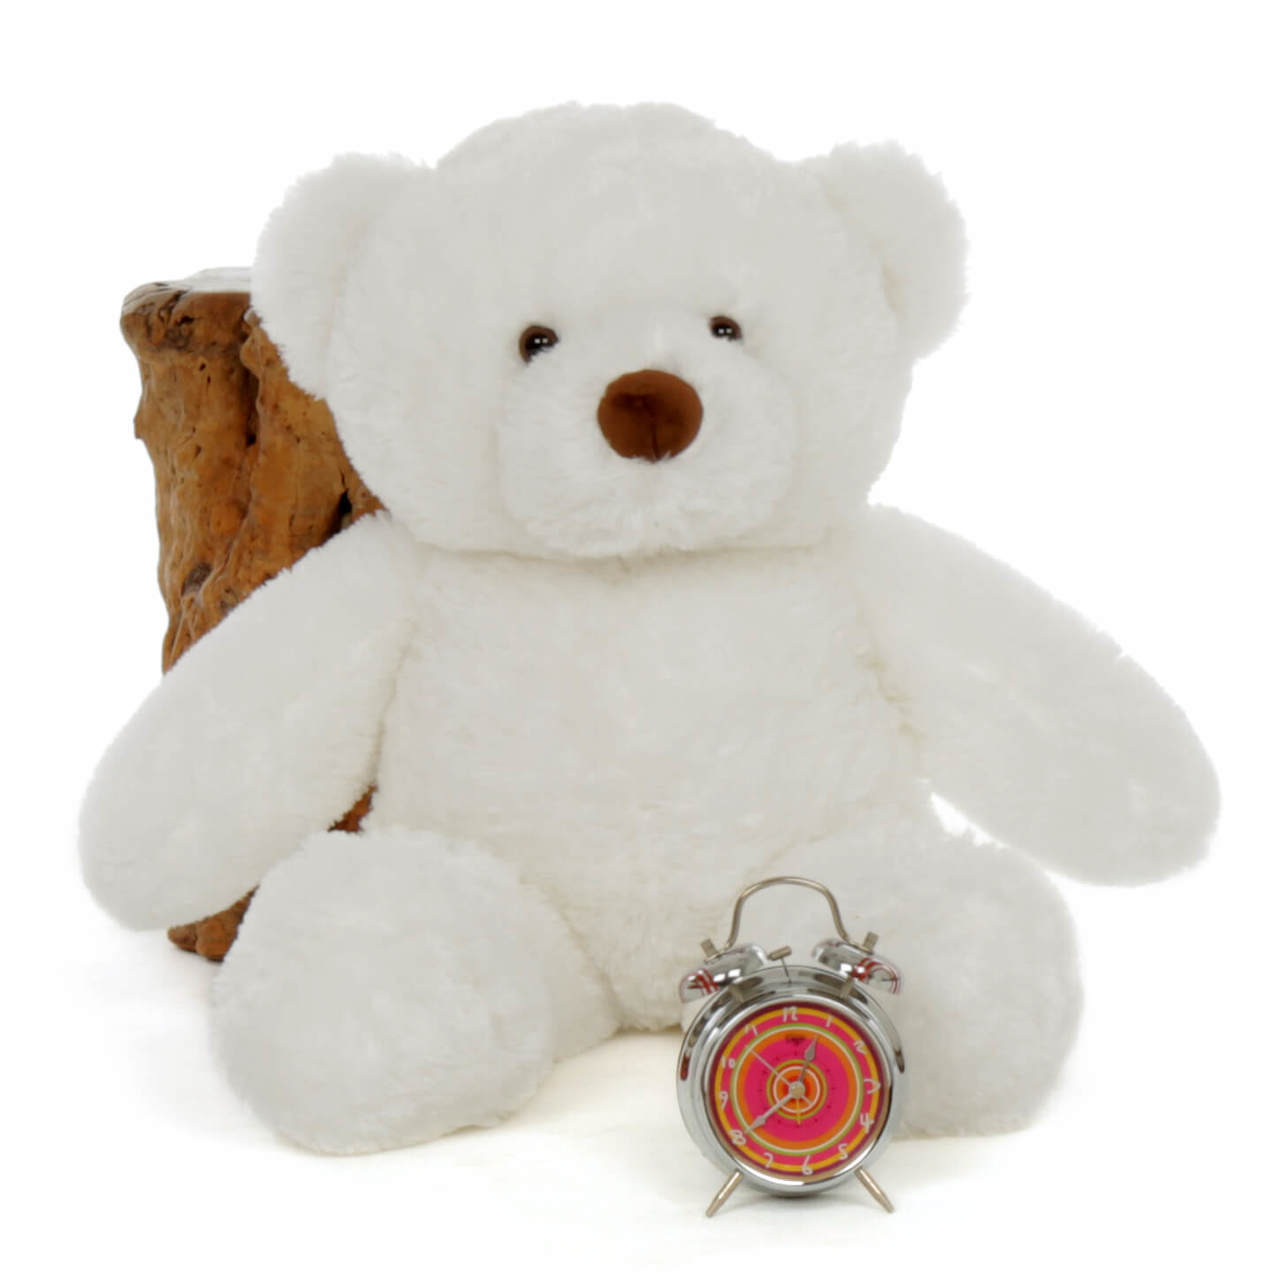 30in Sprinkle Chubs Giant White Teddy Bear (Clock and Log NOT included)